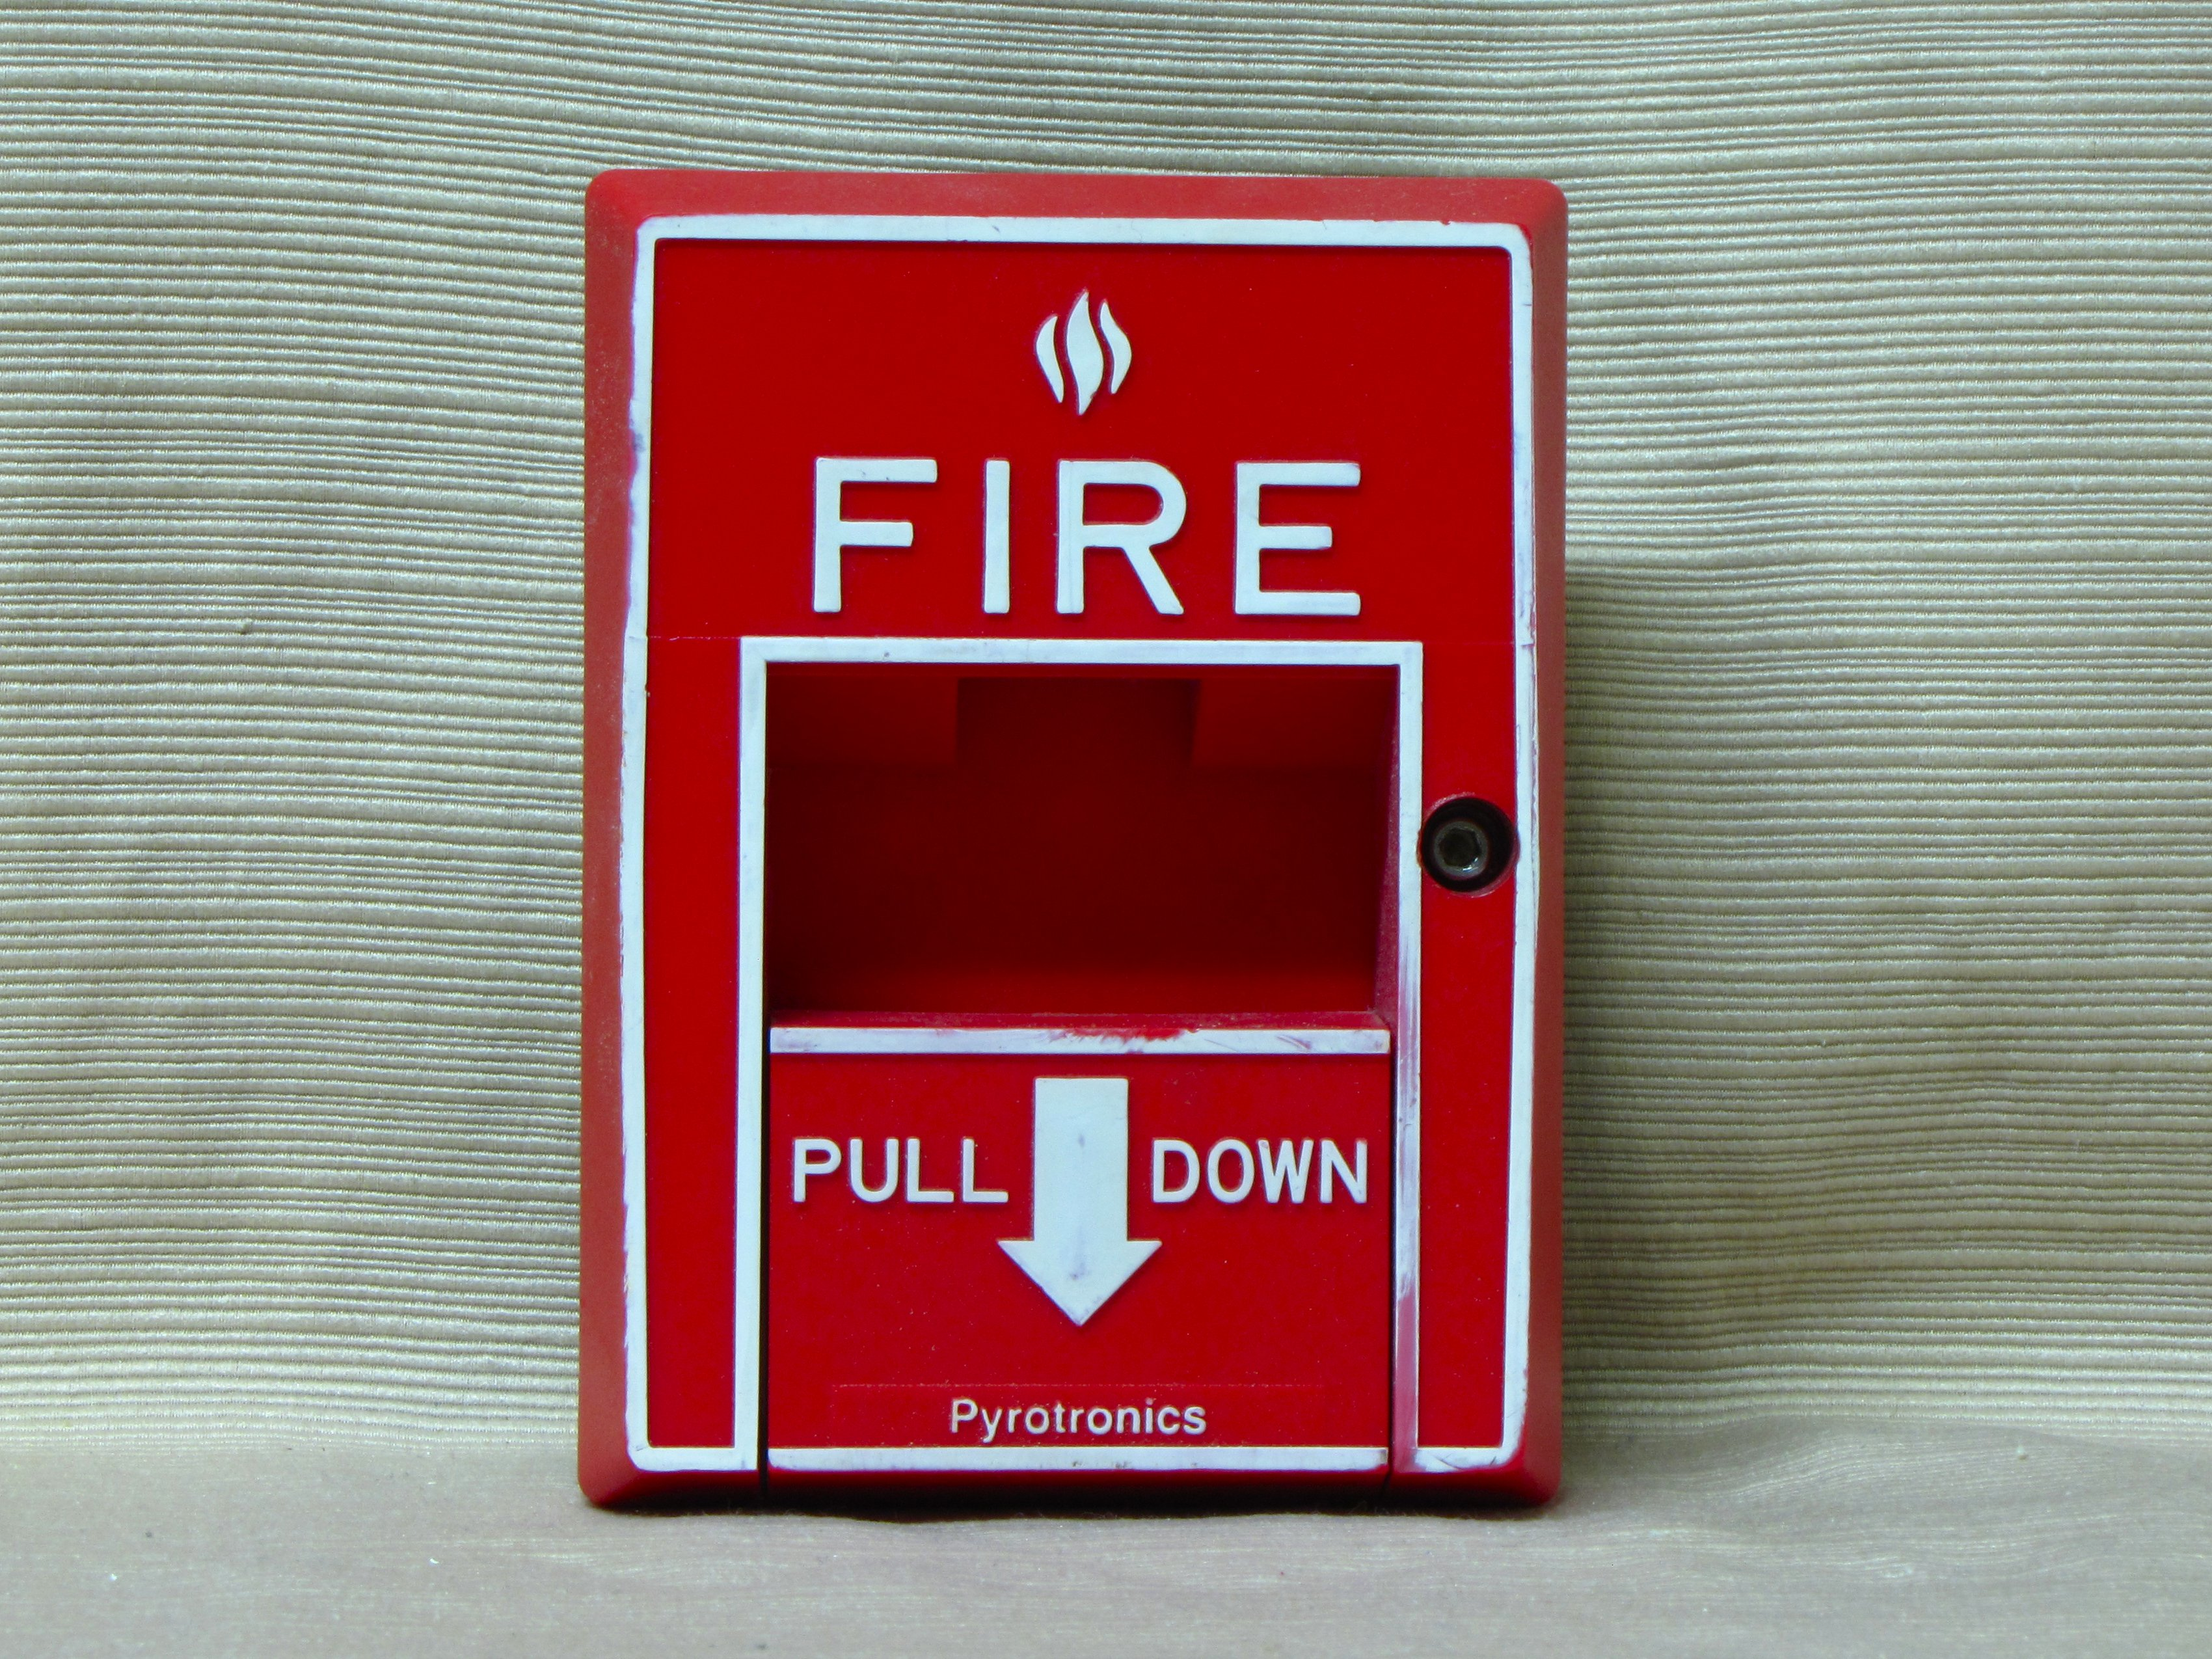 Alarm alert bell danger fire fire alarm warning icon as well Grass Residences together with Fire Detection Gas as well House On Fire Clipart likewise Viewtopic. on fire alarm collection